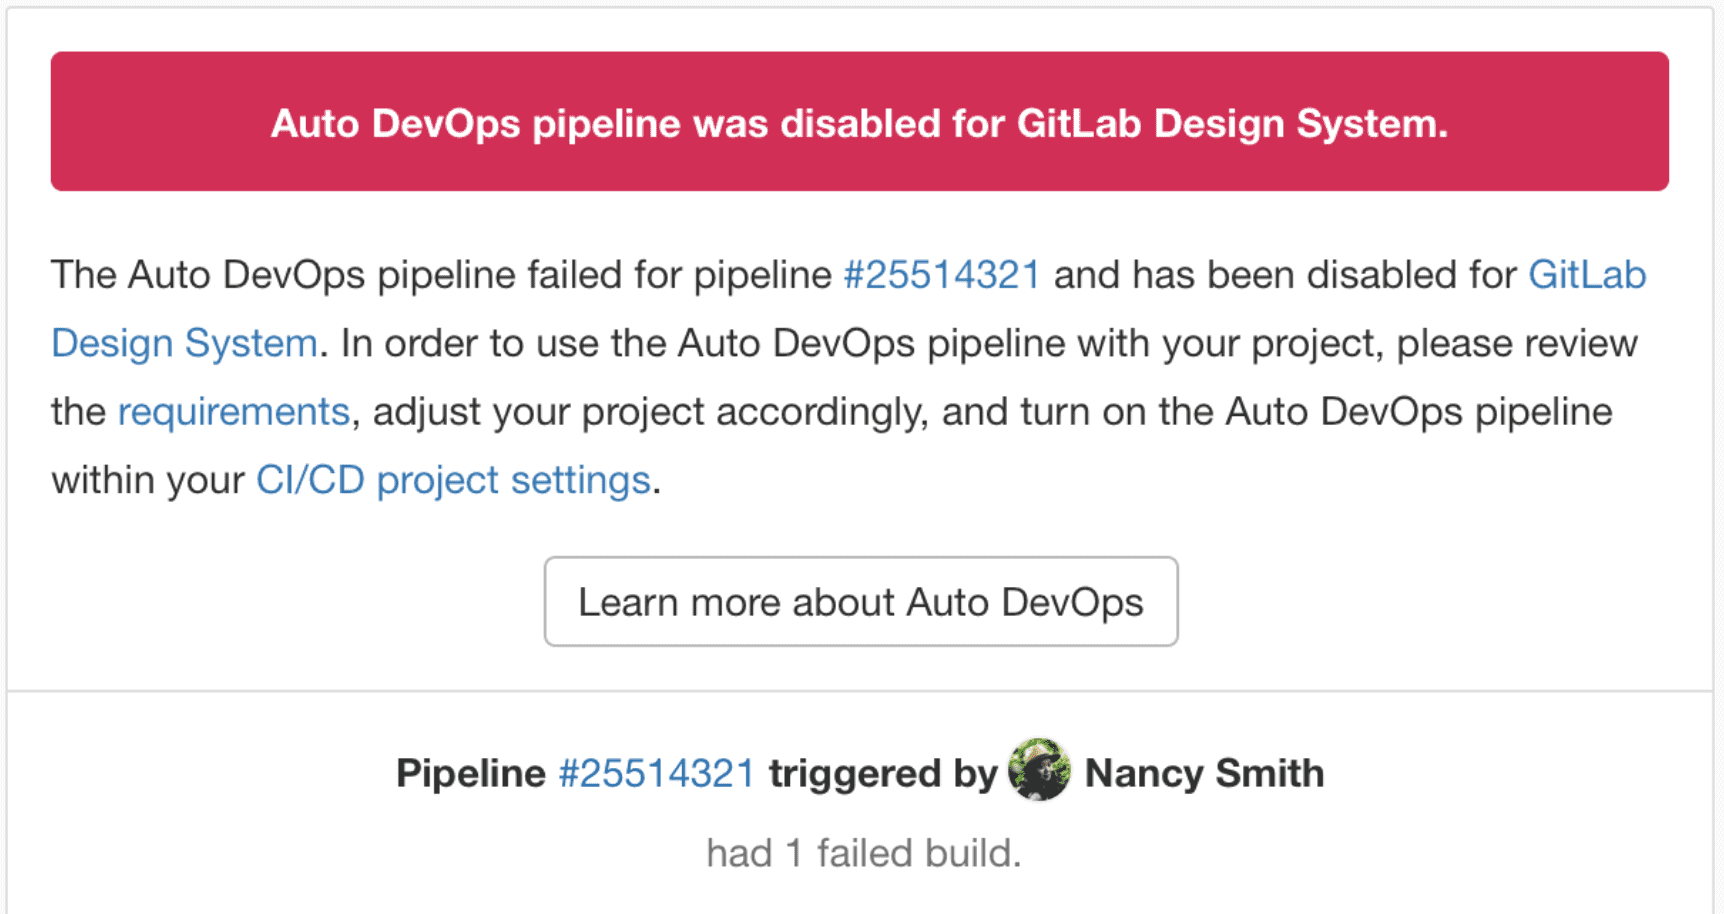 Automatically disable Auto DevOps for project upon first pipeline failure